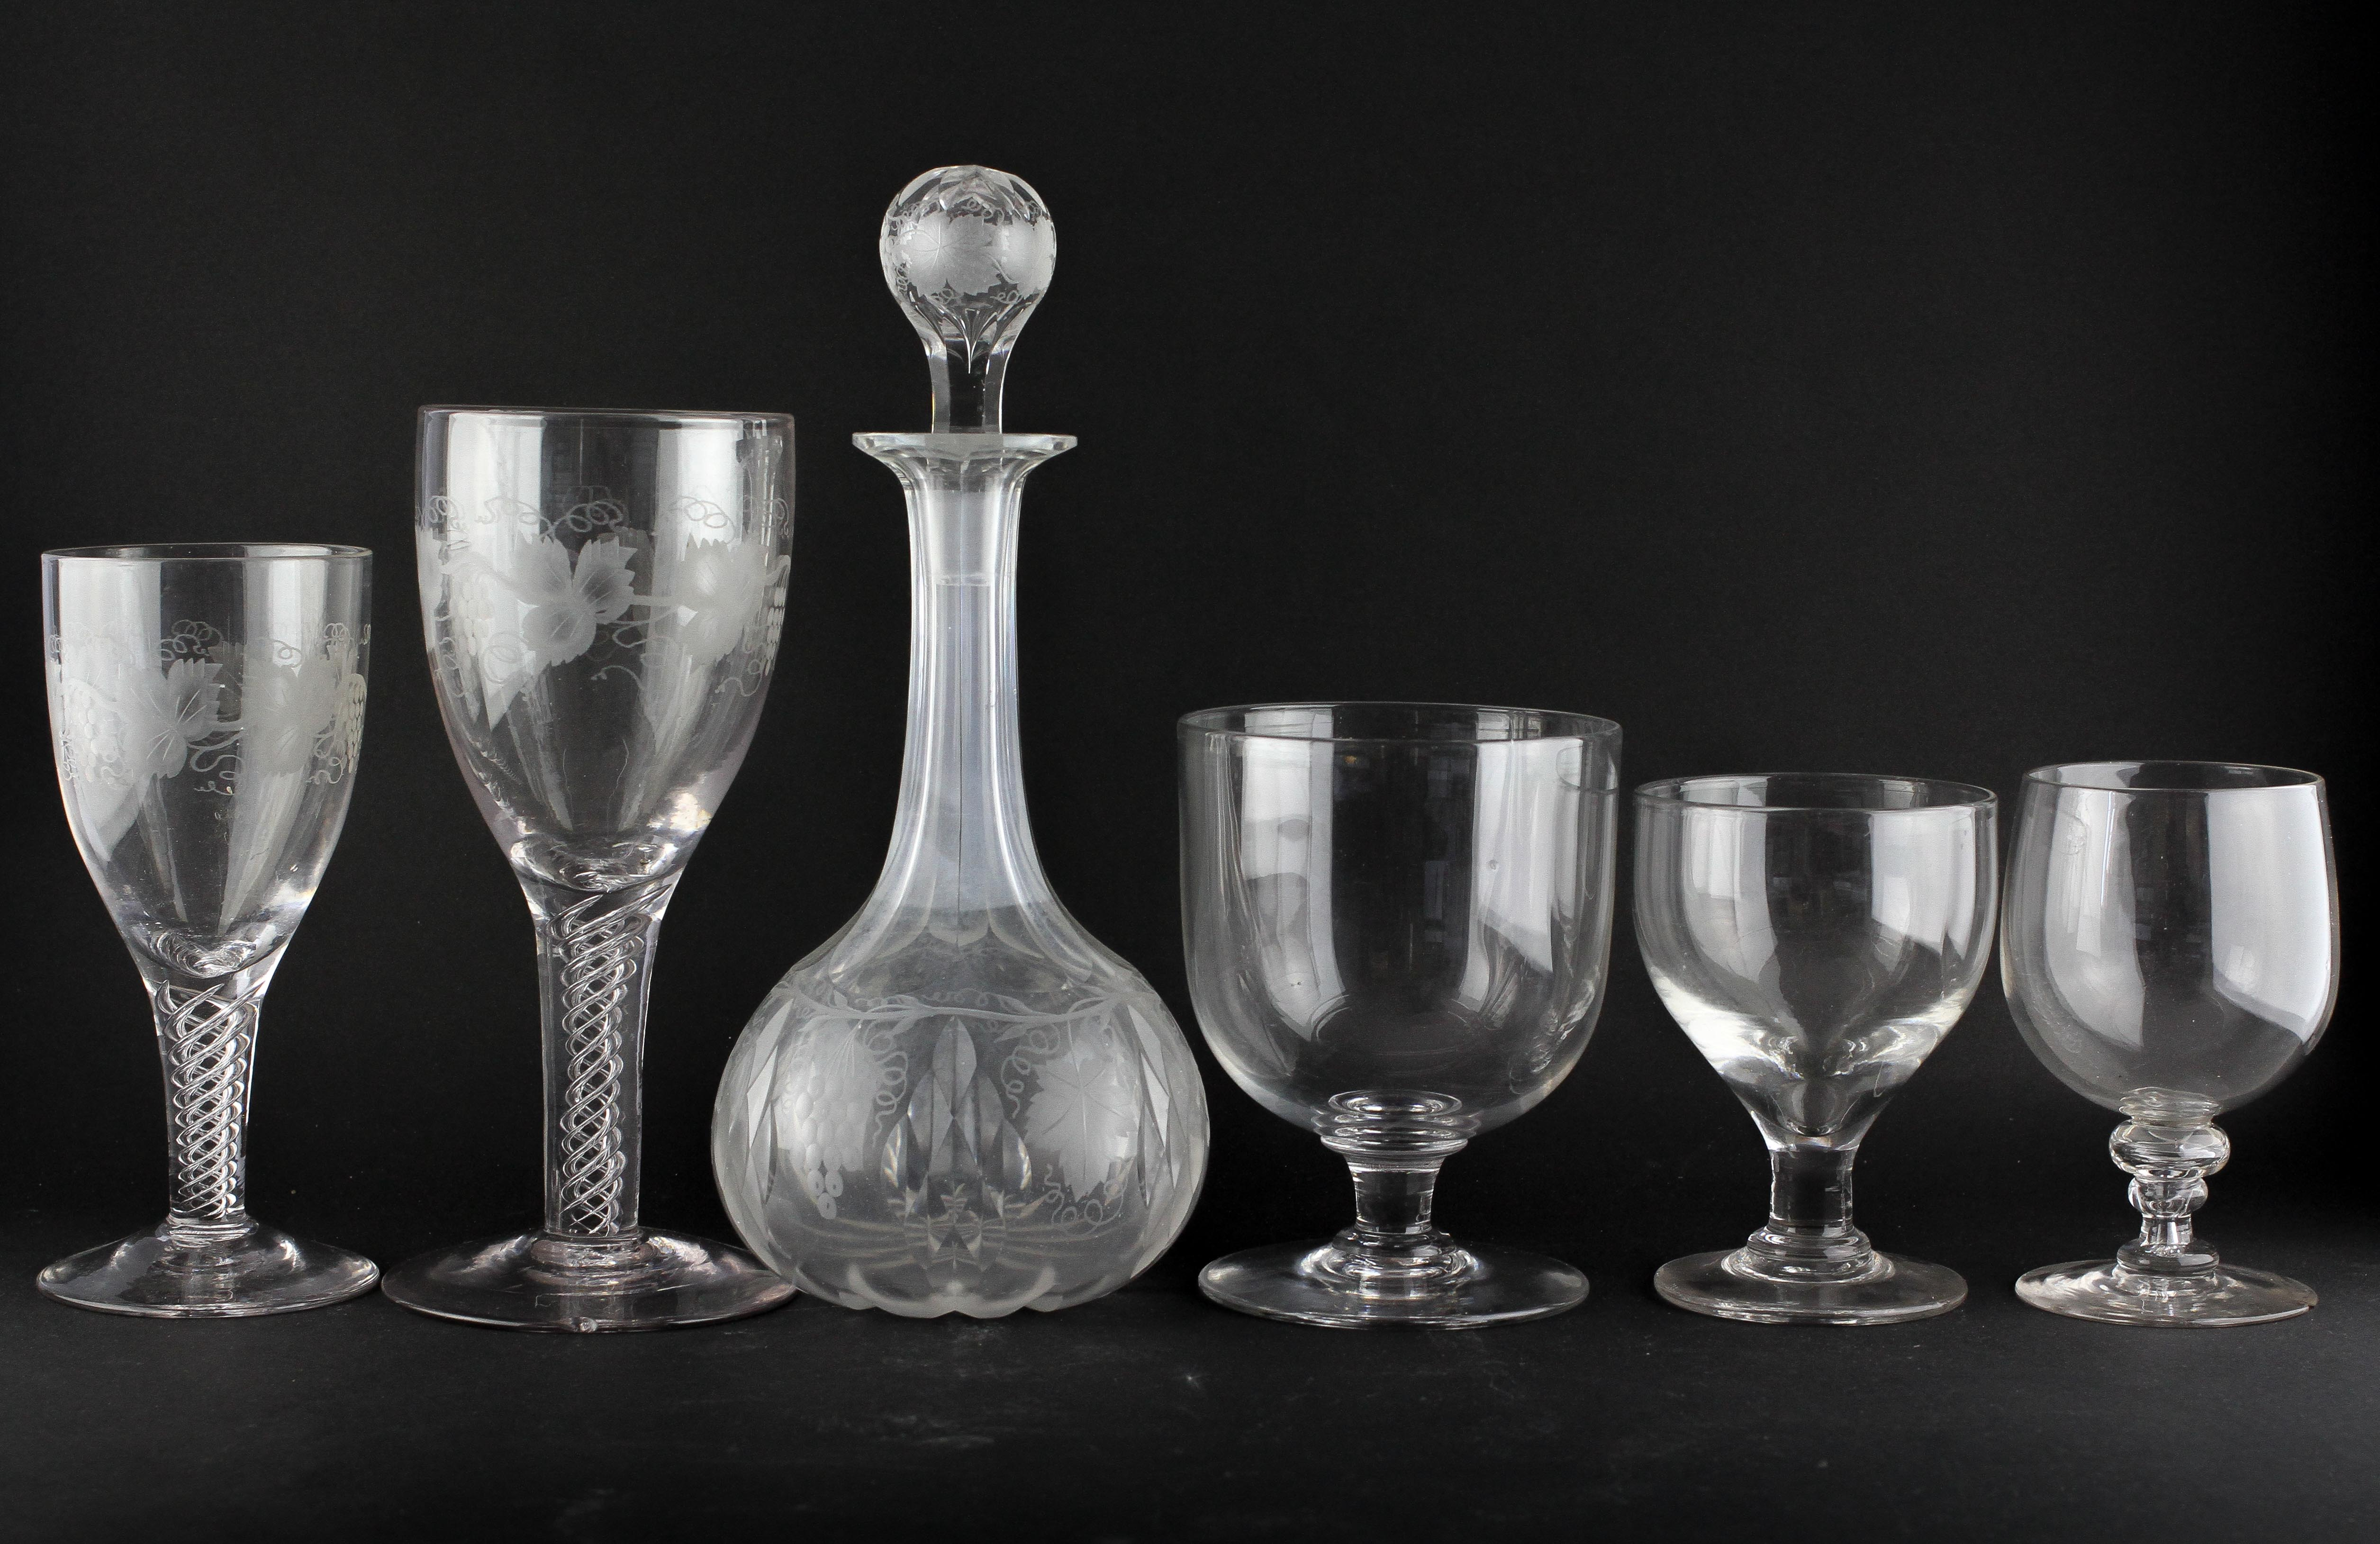 Five drinking glasses and a decanter and stopper,